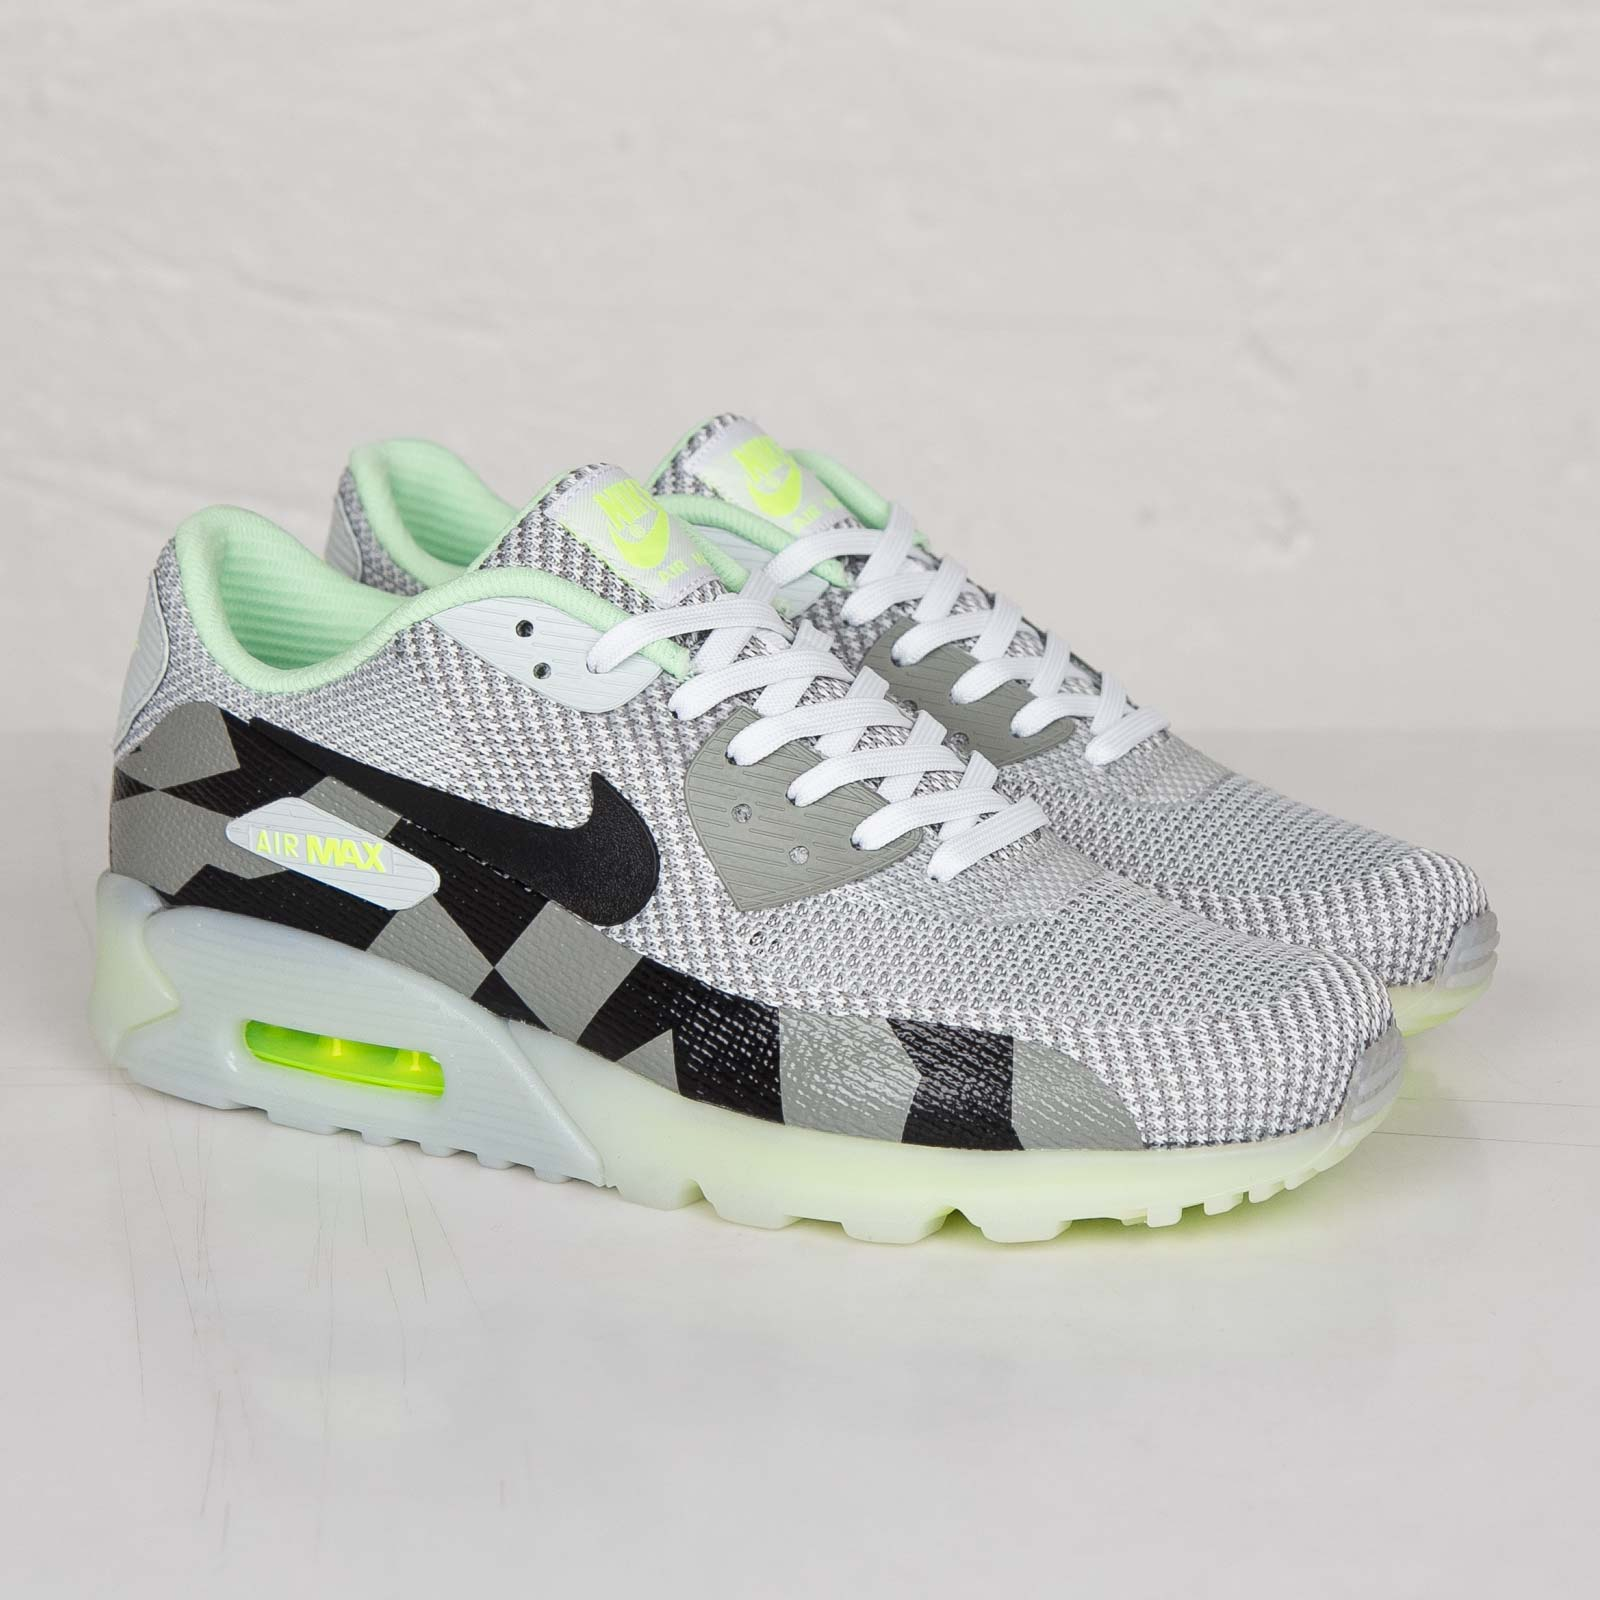 Nike Air Max 90 Knit Jacquard Ice QS 744553 100 Sneakersnstuff